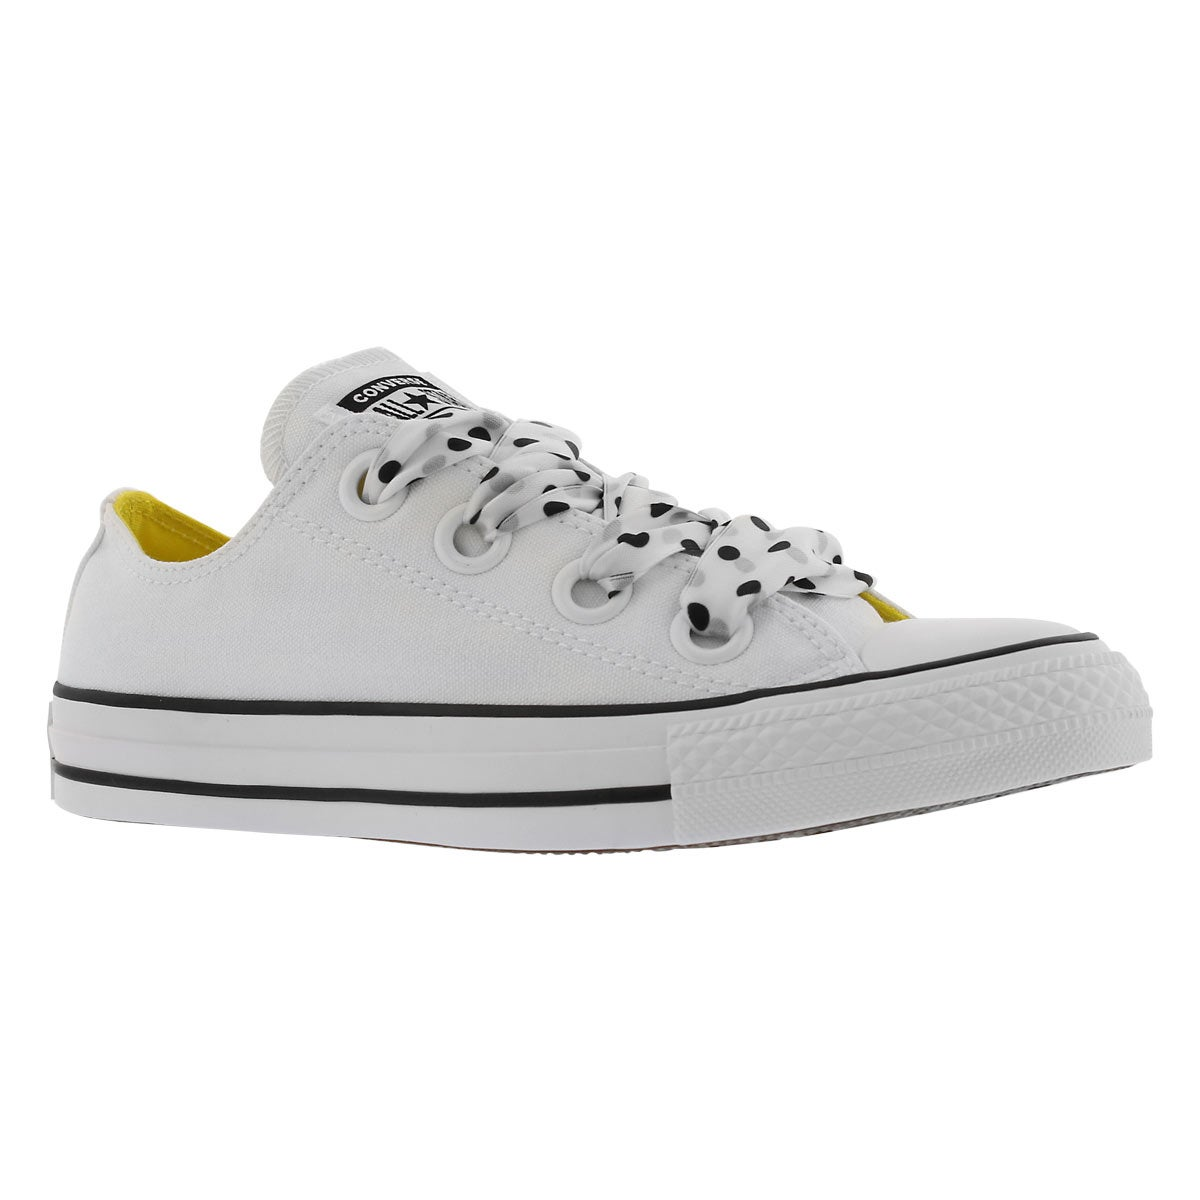 Women's CT ALL STAR BIG EYELETS wht/blk sneakers